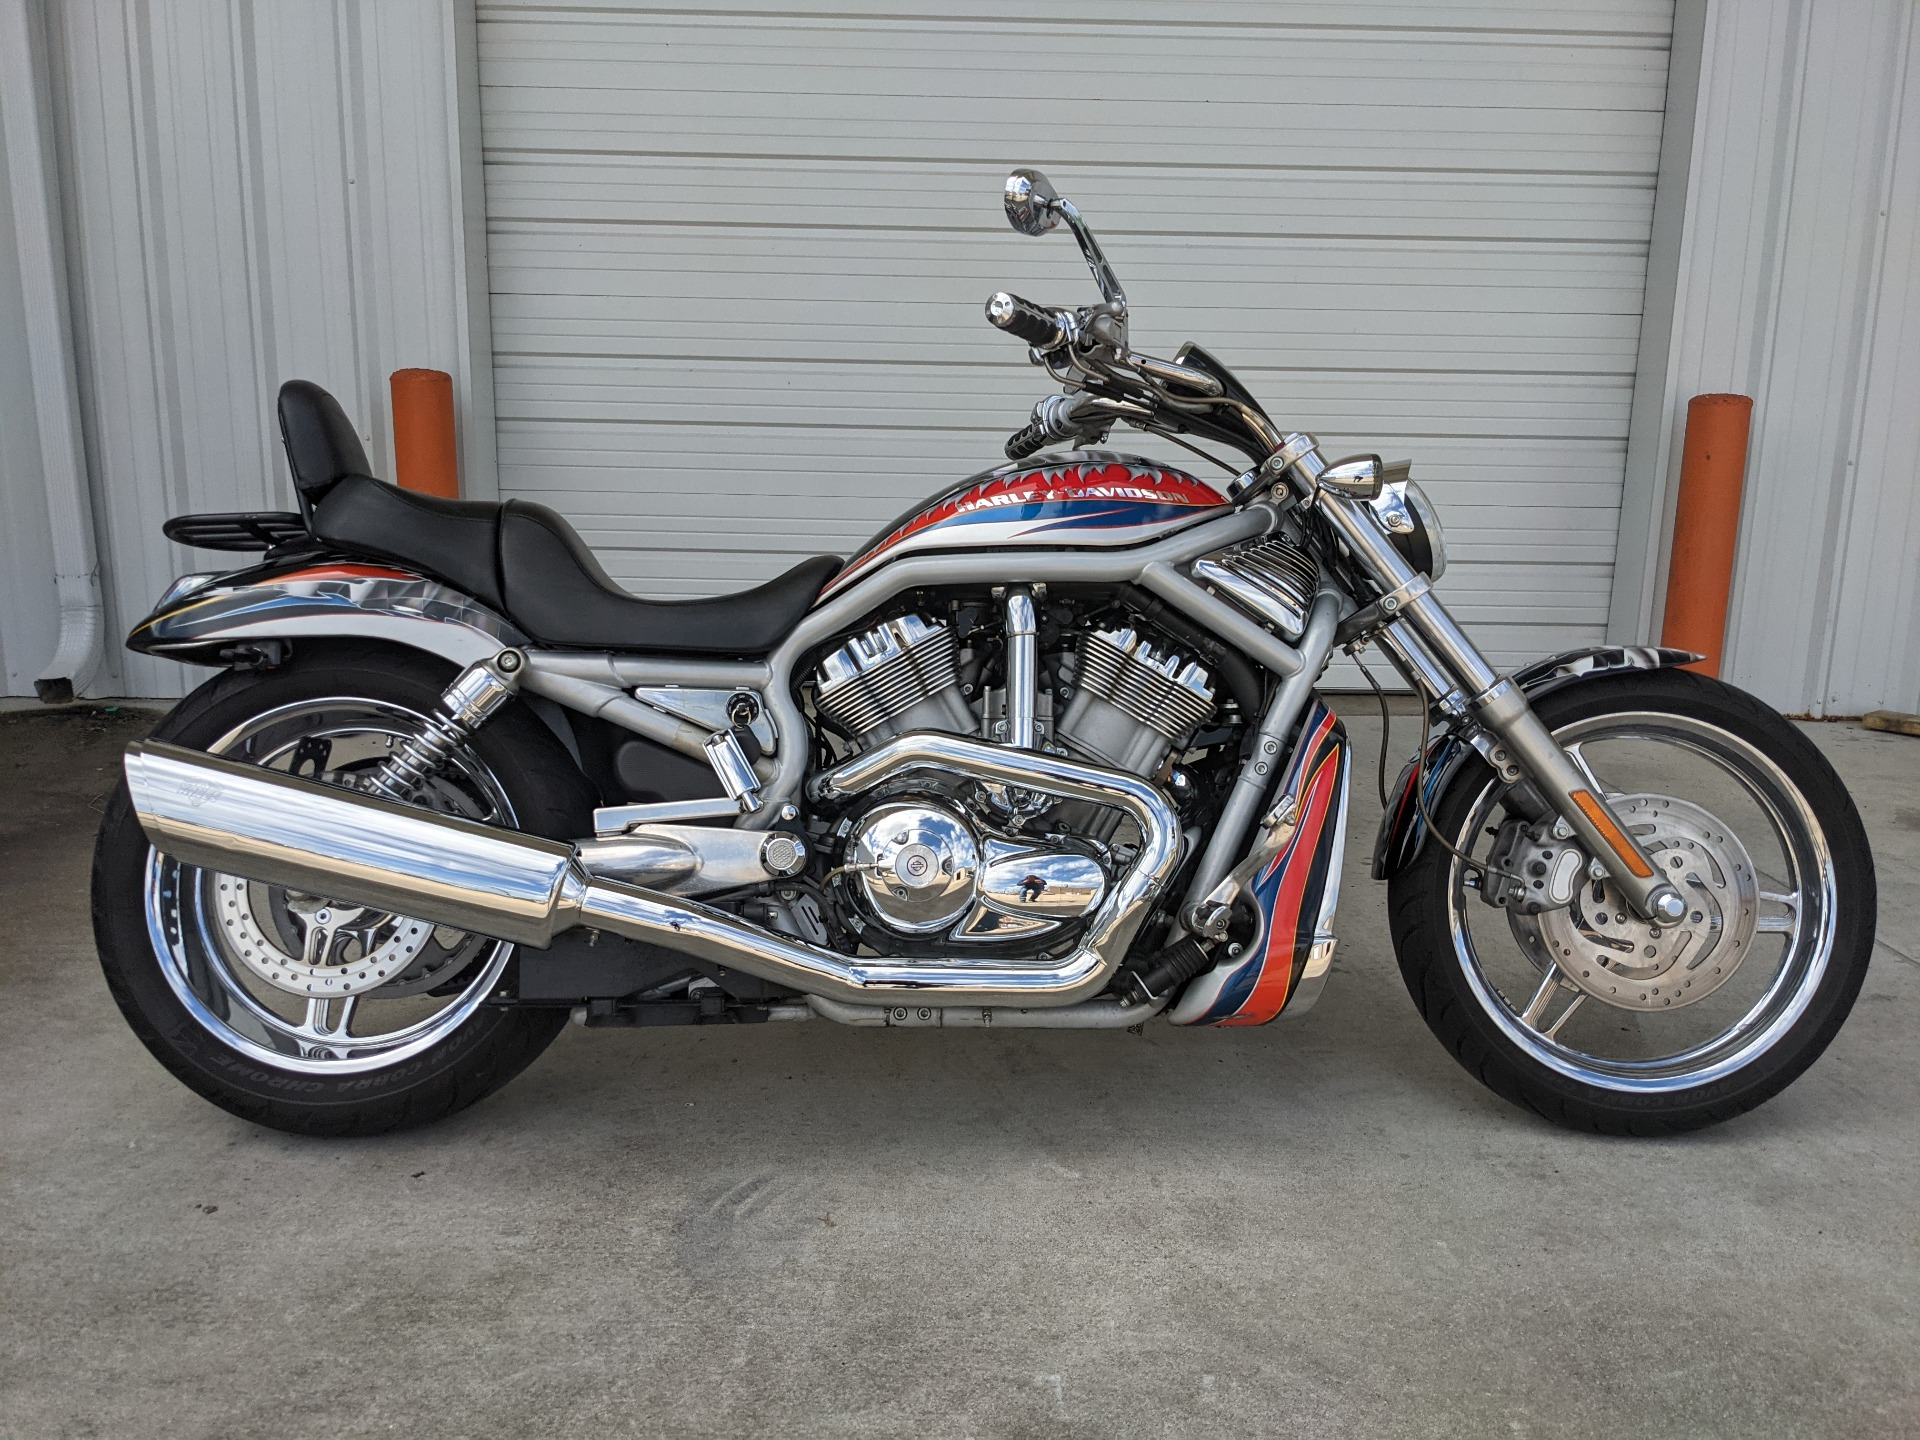 2003 Harley V-Rod for sale mint - Photo 14